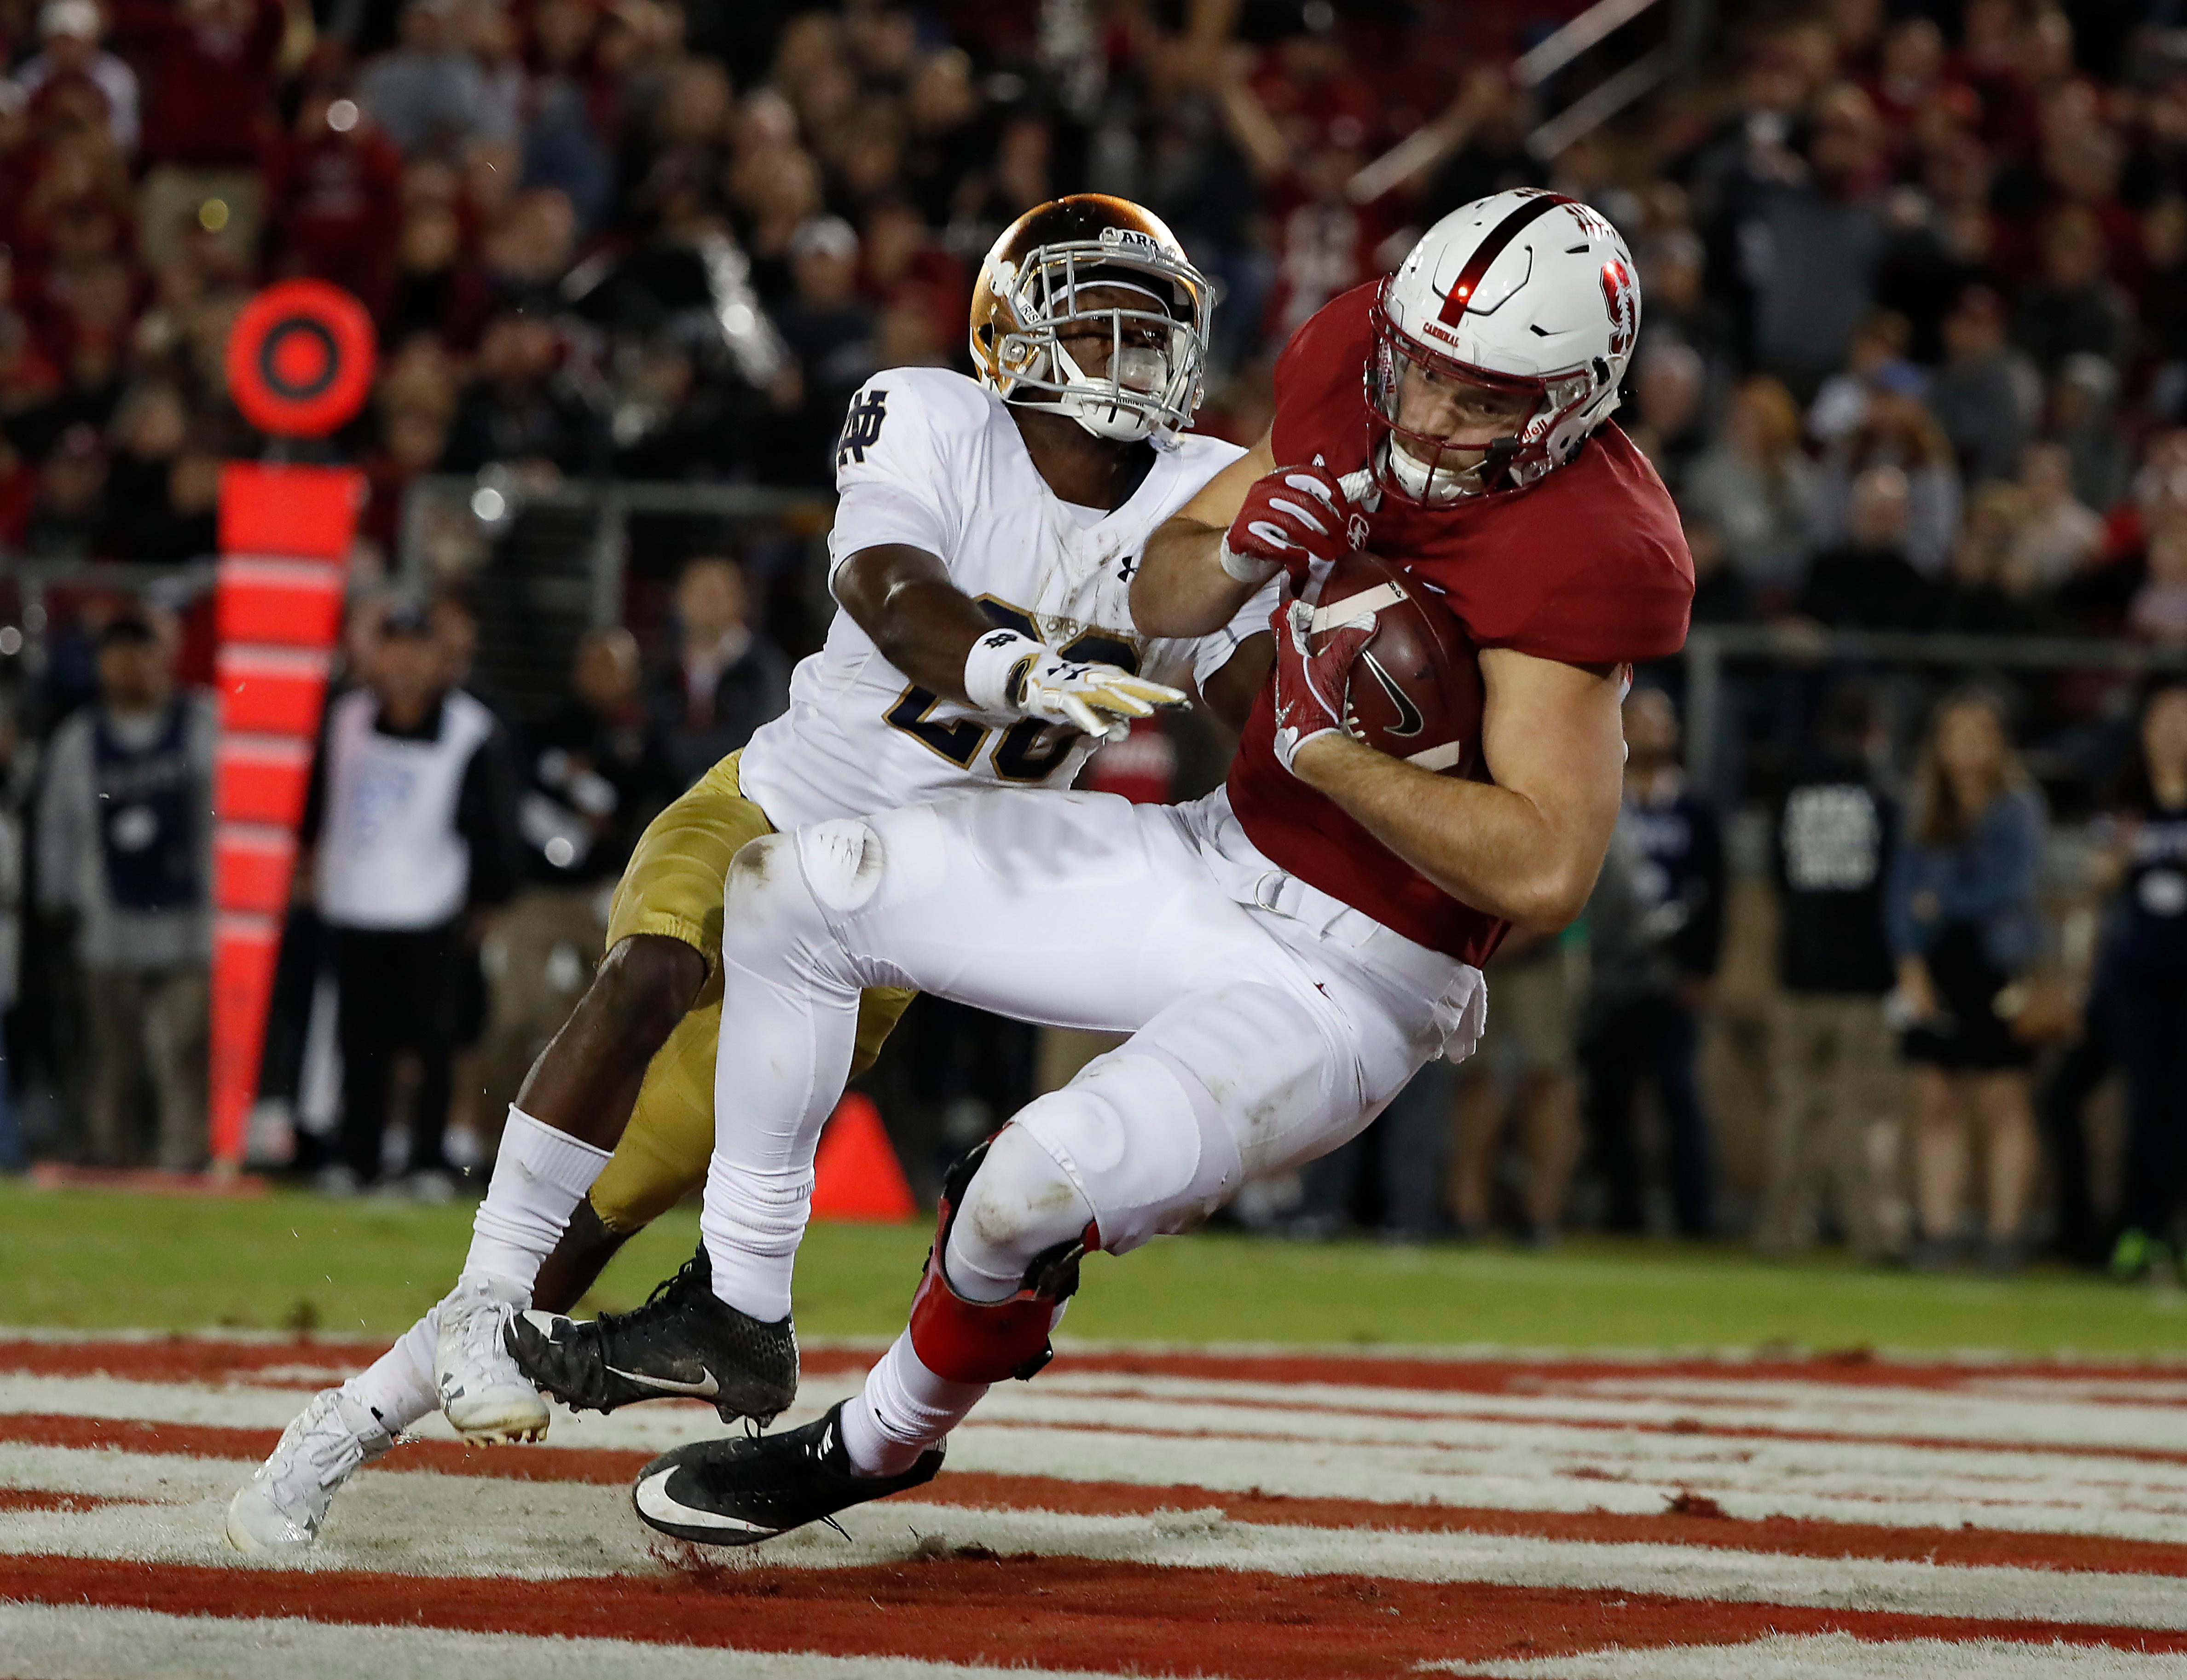 FILE - In this Nov. 25, 2017, file photo, Stanford tight end Kaden Smith (82) catches a touchdown pass in front of Notre Dame cornerback Shaun Crawford (20) during the second half of an NCAA college football game, in Stanford, Calif. Smith was selected to the AP All-Conference Pac-12 team announced Thursday, Dec. 7, 2017. (AP Photo/Tony Avelar, File)